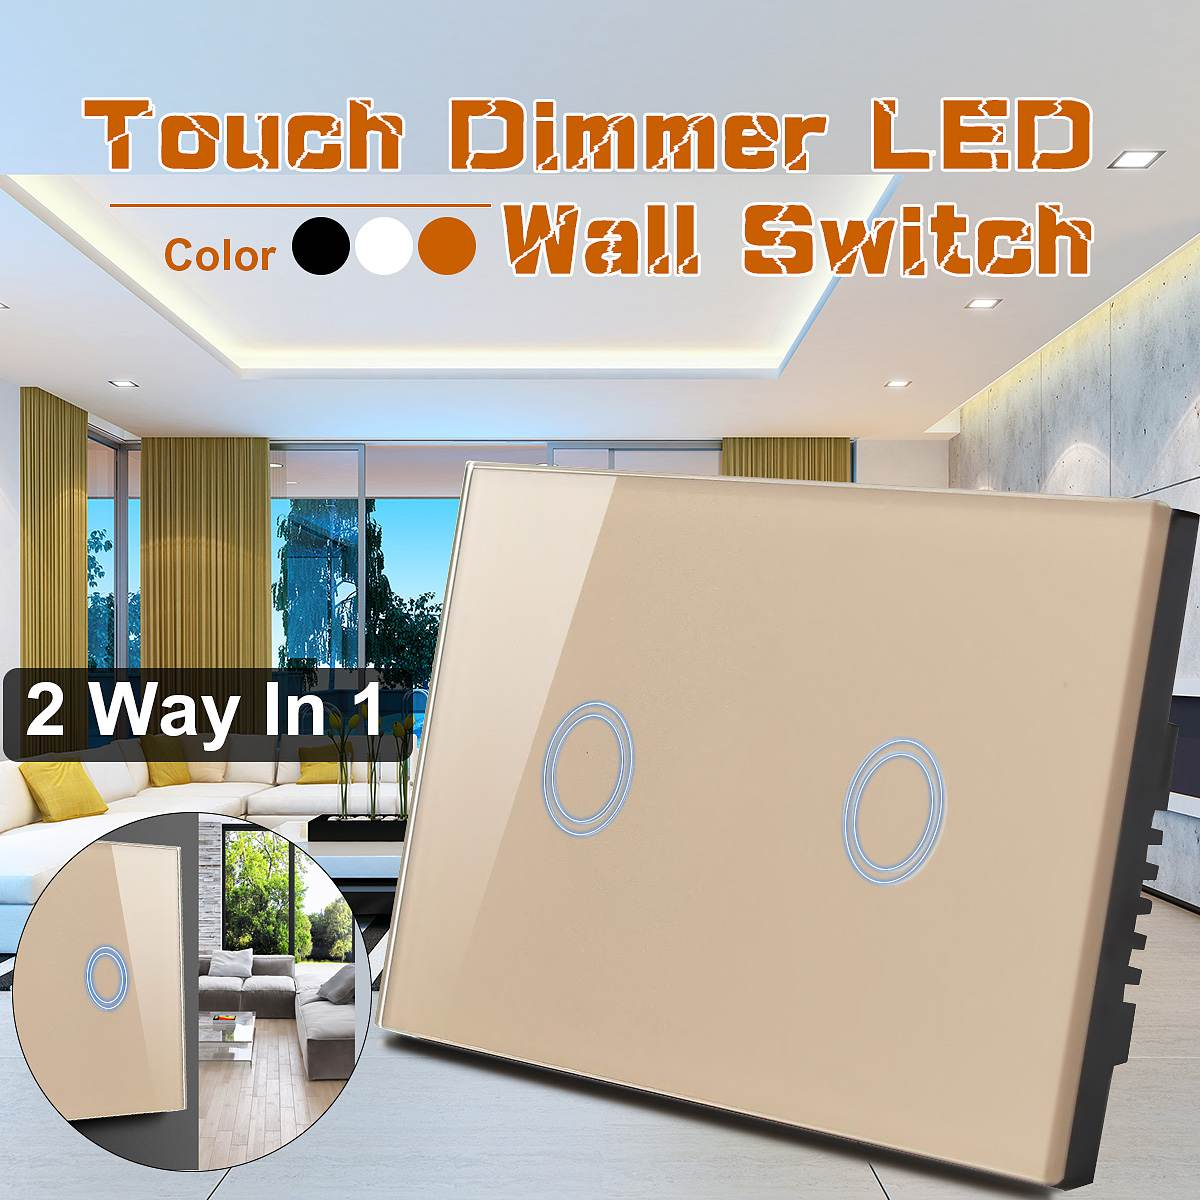 SWILET 120 Type Two Way Sensor Touch Switch 110V-240V Crystal Glass Panel Touch Switch Remote Control For Light LEDSWILET 120 Type Two Way Sensor Touch Switch 110V-240V Crystal Glass Panel Touch Switch Remote Control For Light LED